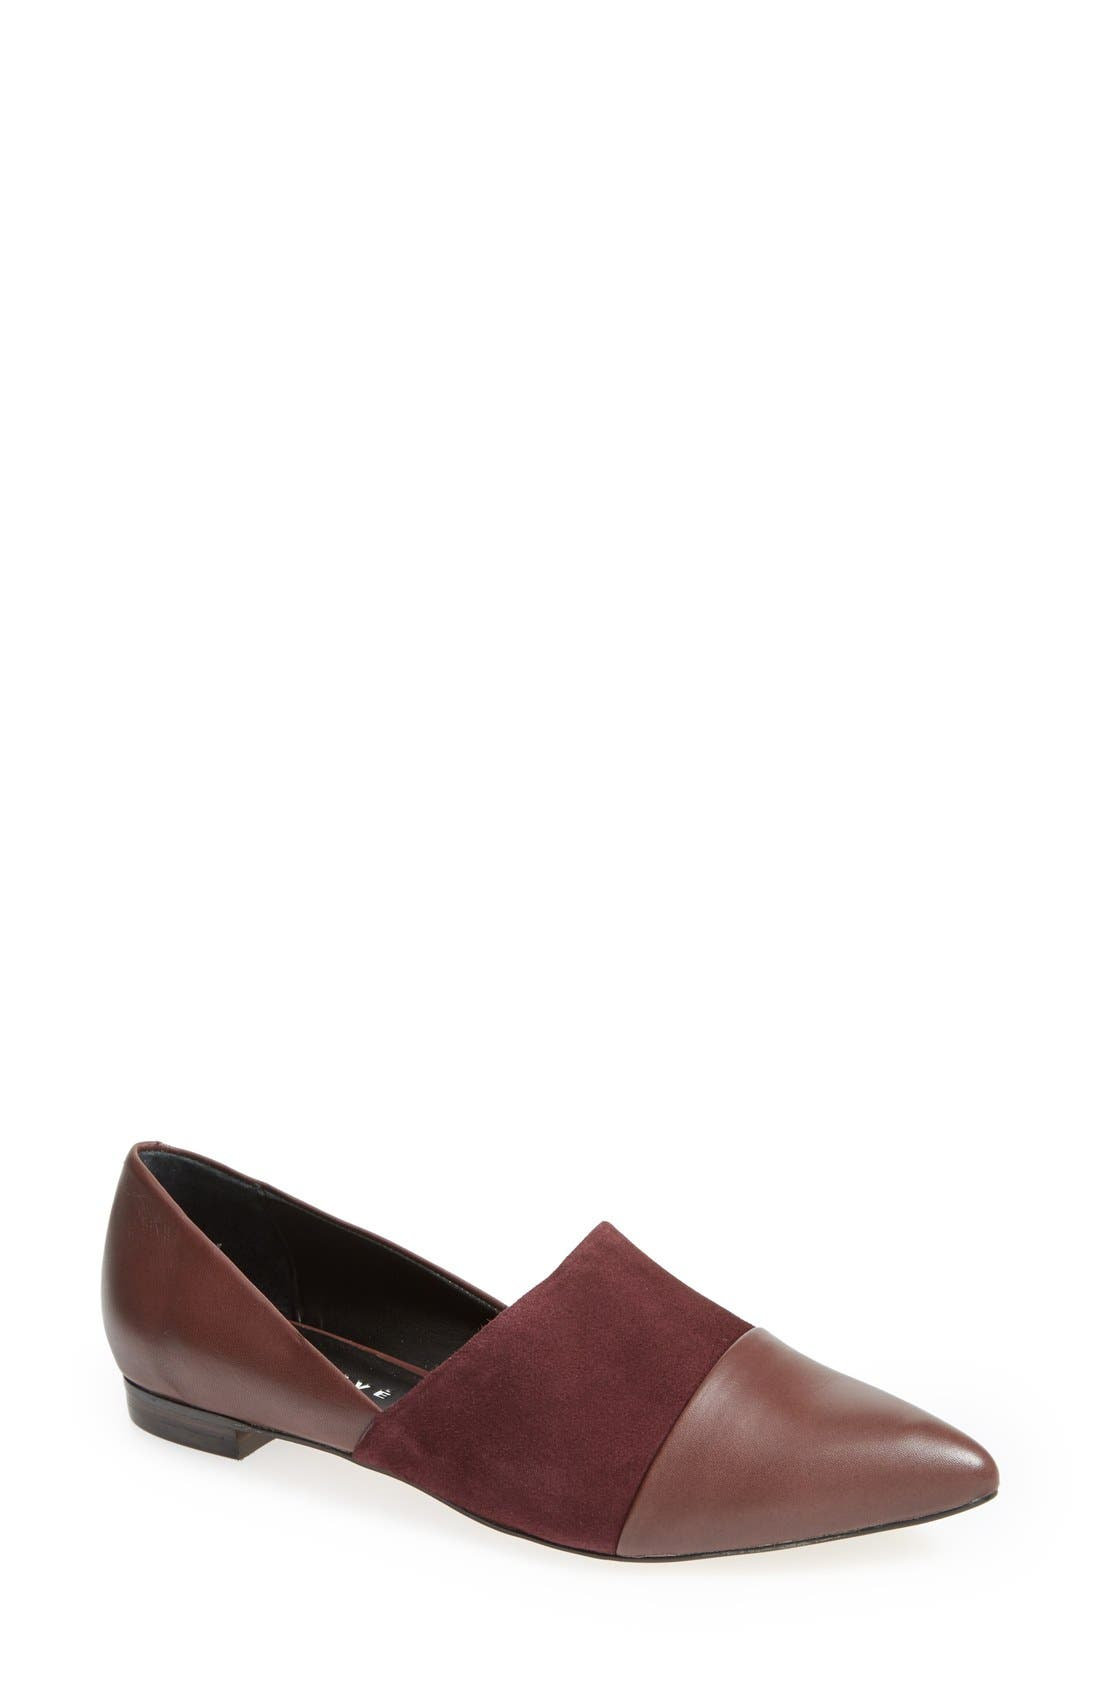 Alternate Image 1 Selected - Trouvé 'Beal' Pointy Toe Flat (Women)